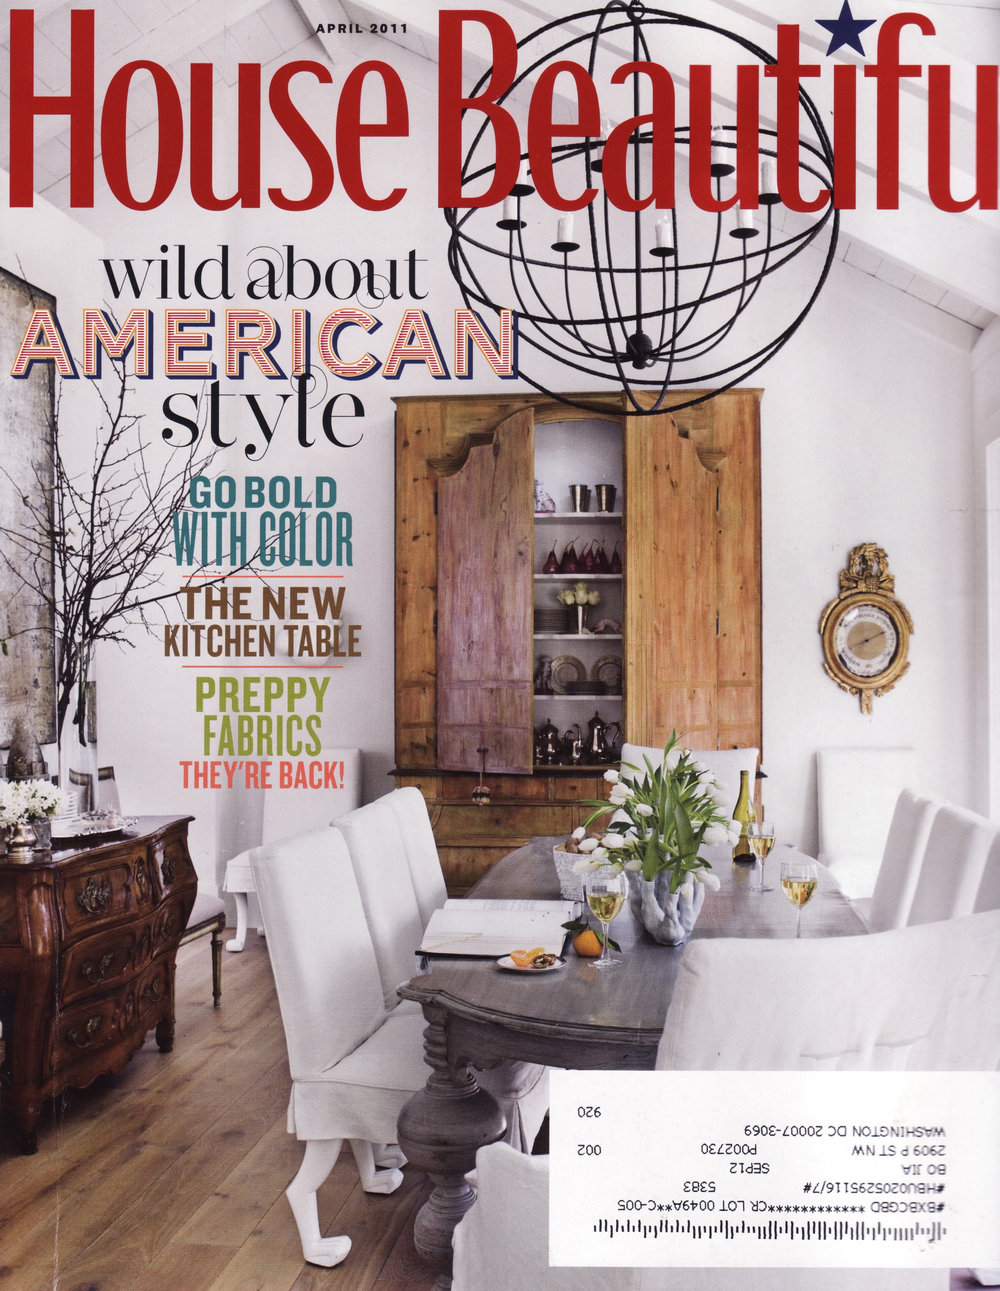 house beautiful apr 2011.jpg